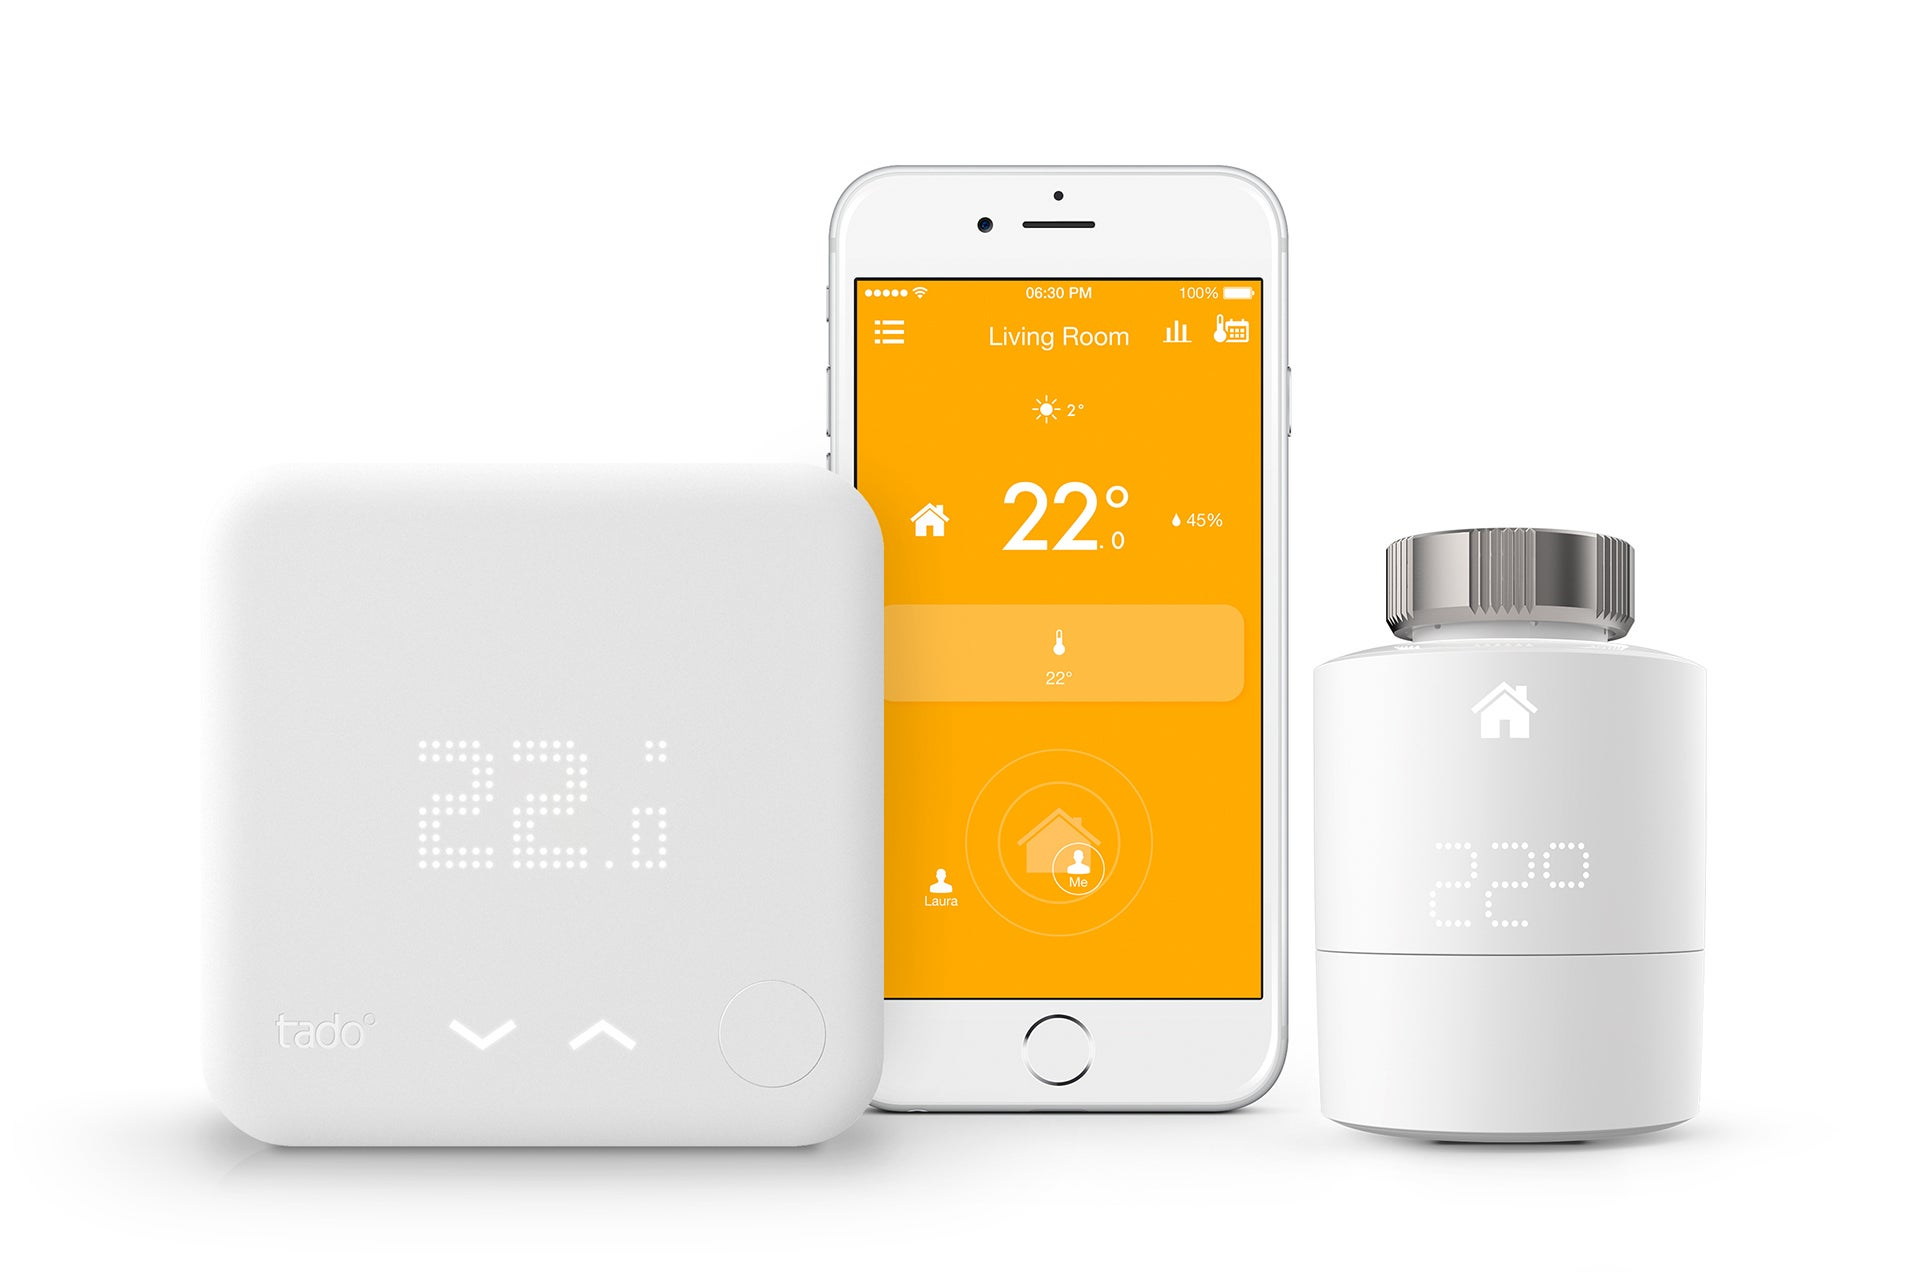 Best Smart Thermostats The 5 To Save You Money Wiring Diagram For Tado Thermostat